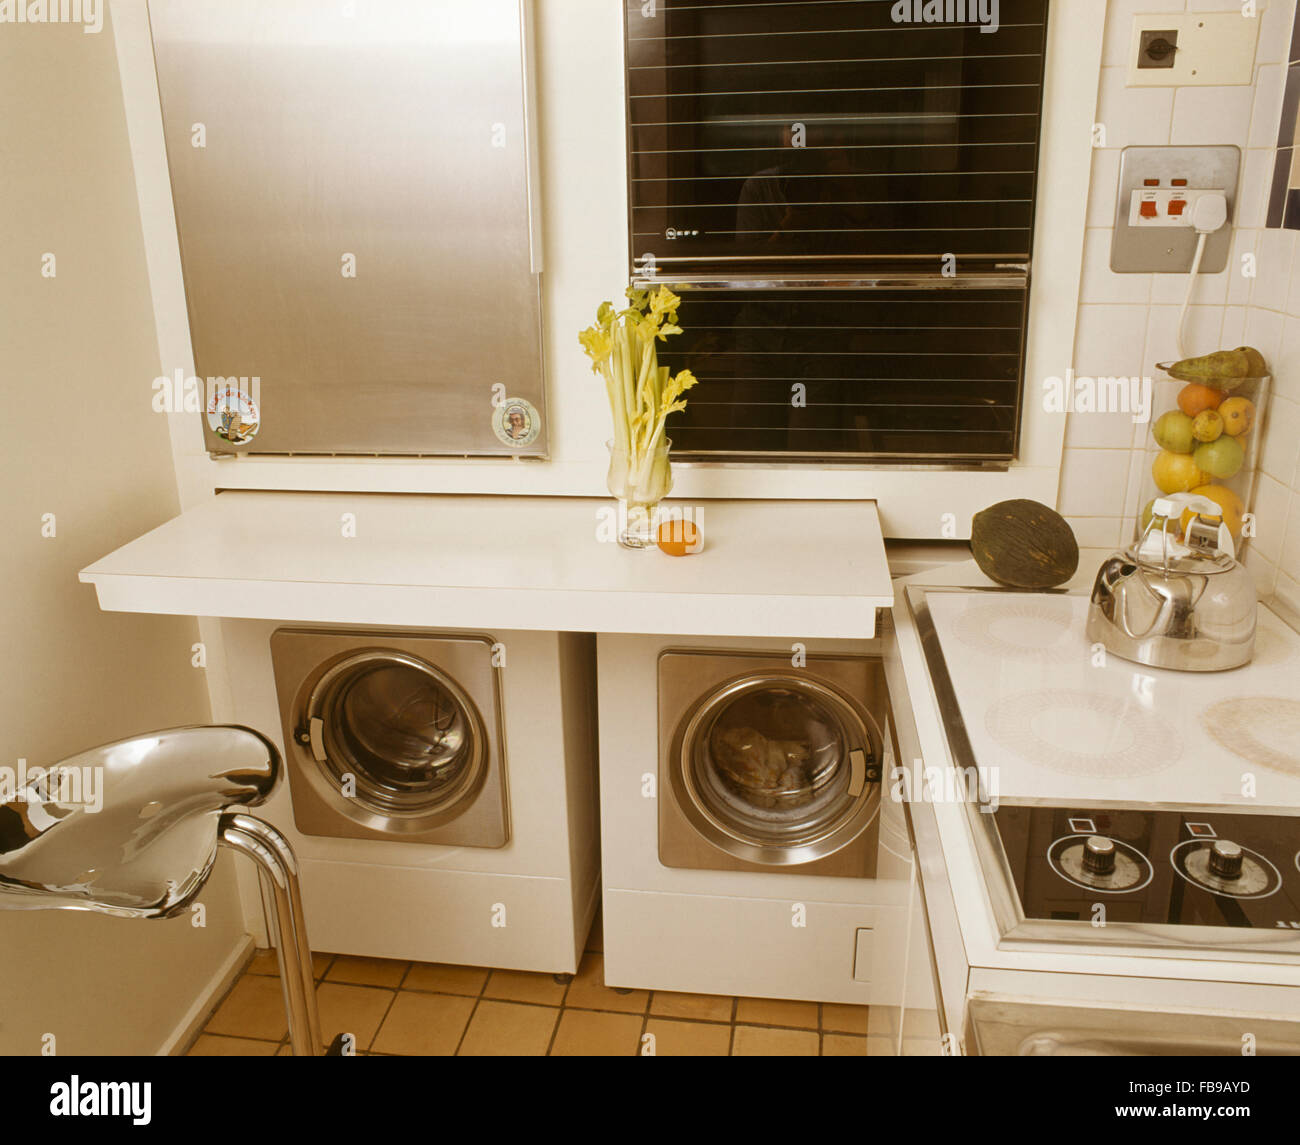 retro washing machine photos retro washing machine. Black Bedroom Furniture Sets. Home Design Ideas